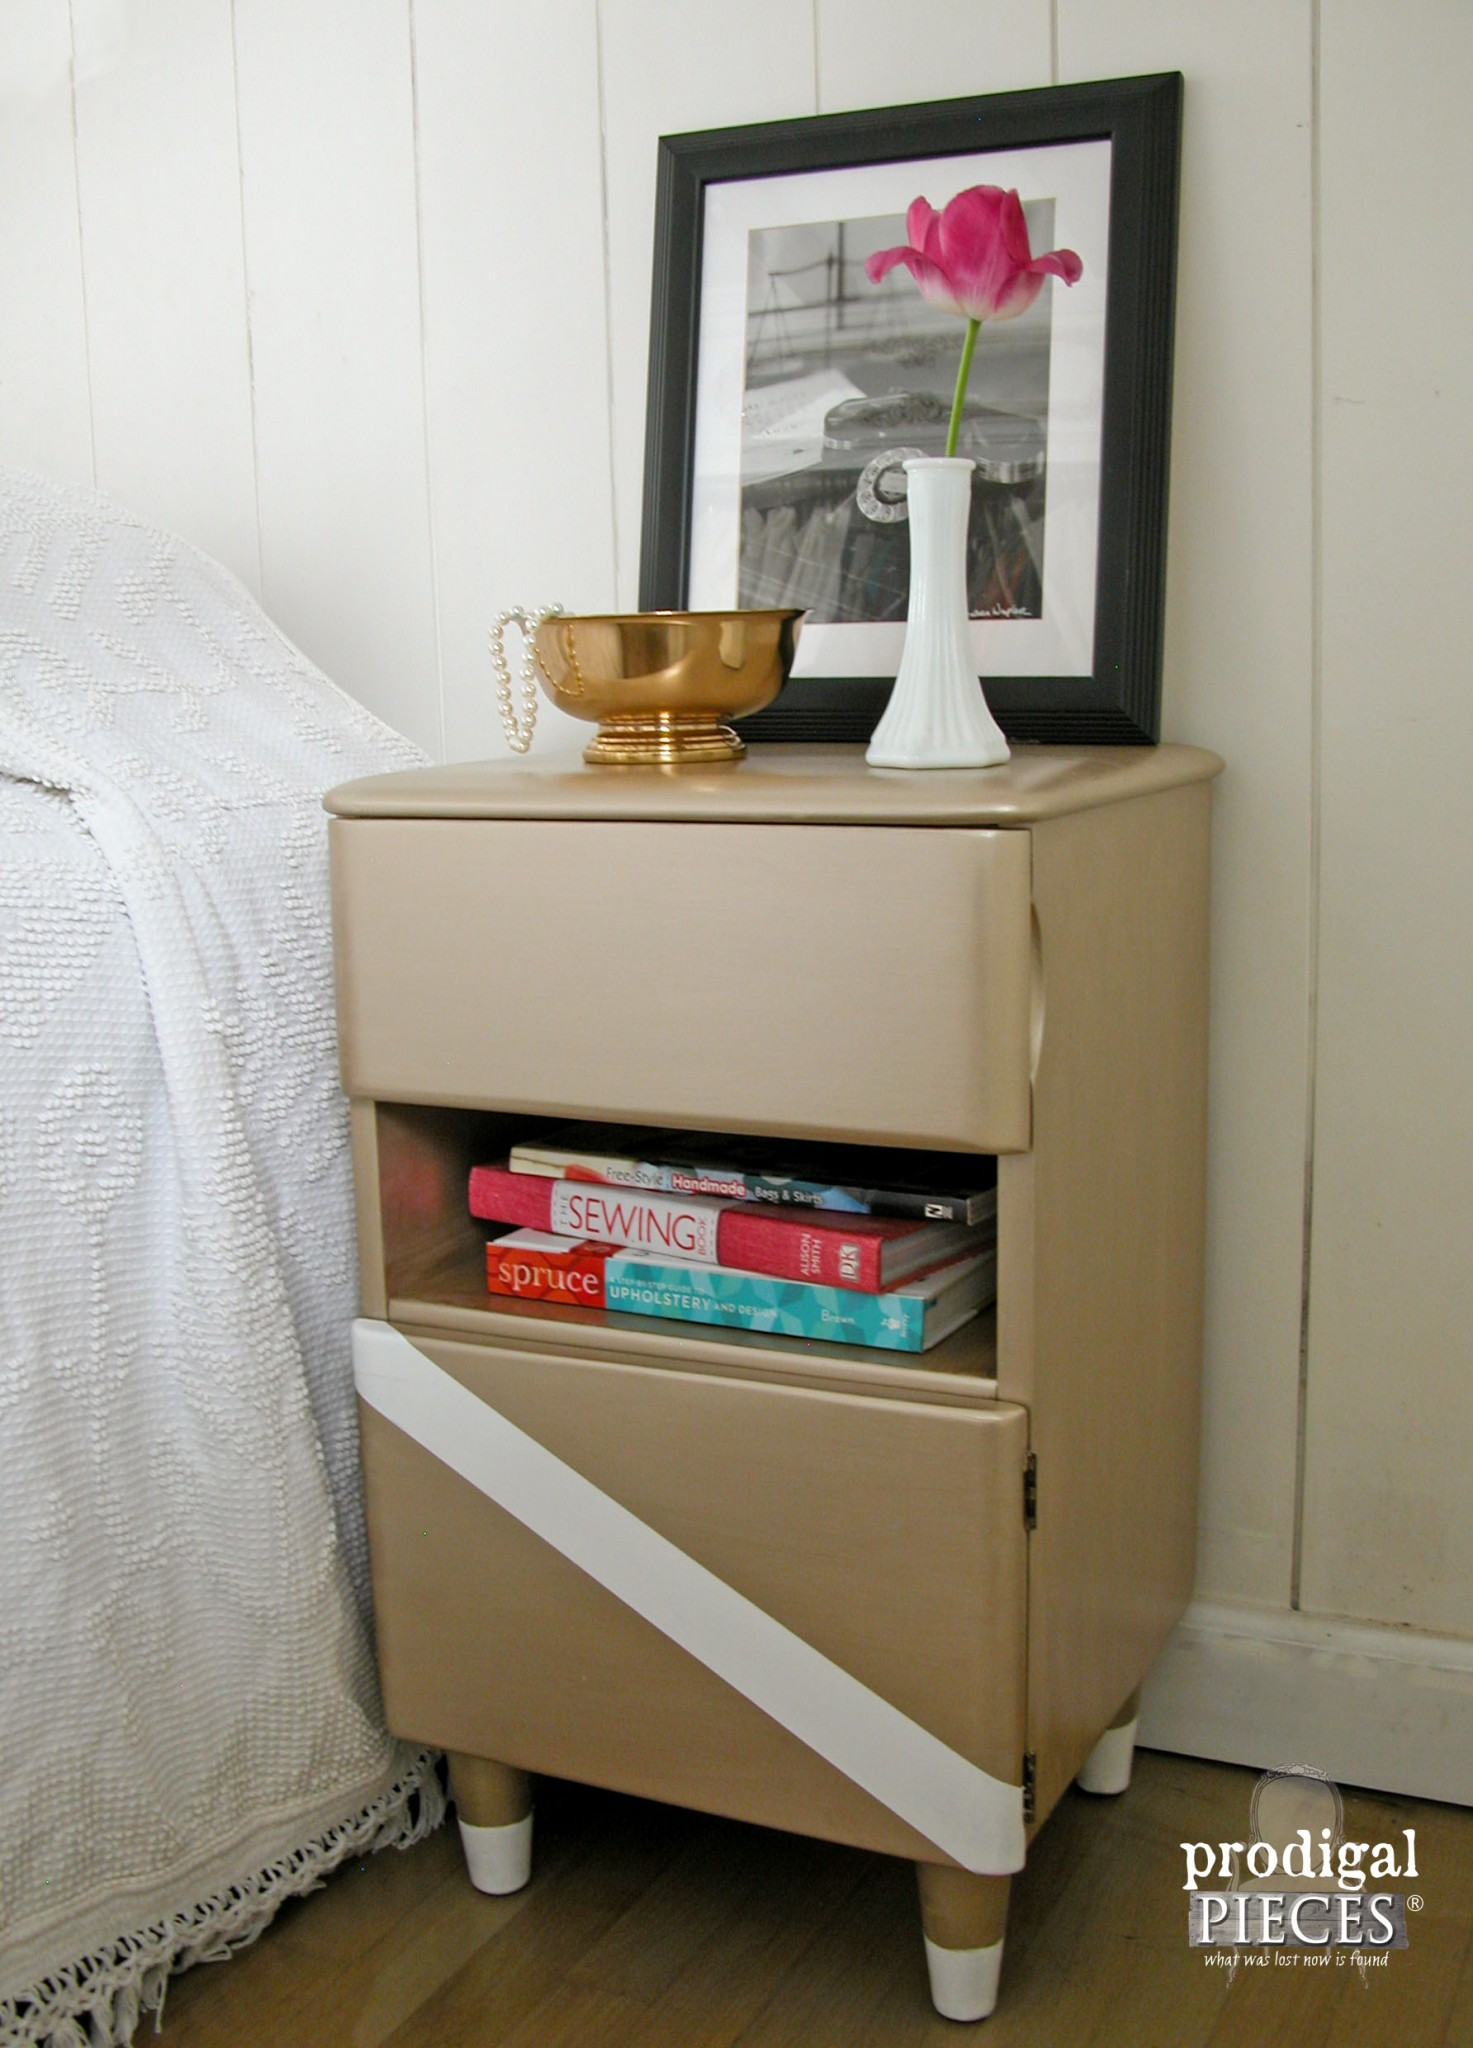 Vintage Art Deco Nightstand with New Modern Look by Prodigal Pieces | www.prodigalpieces.com